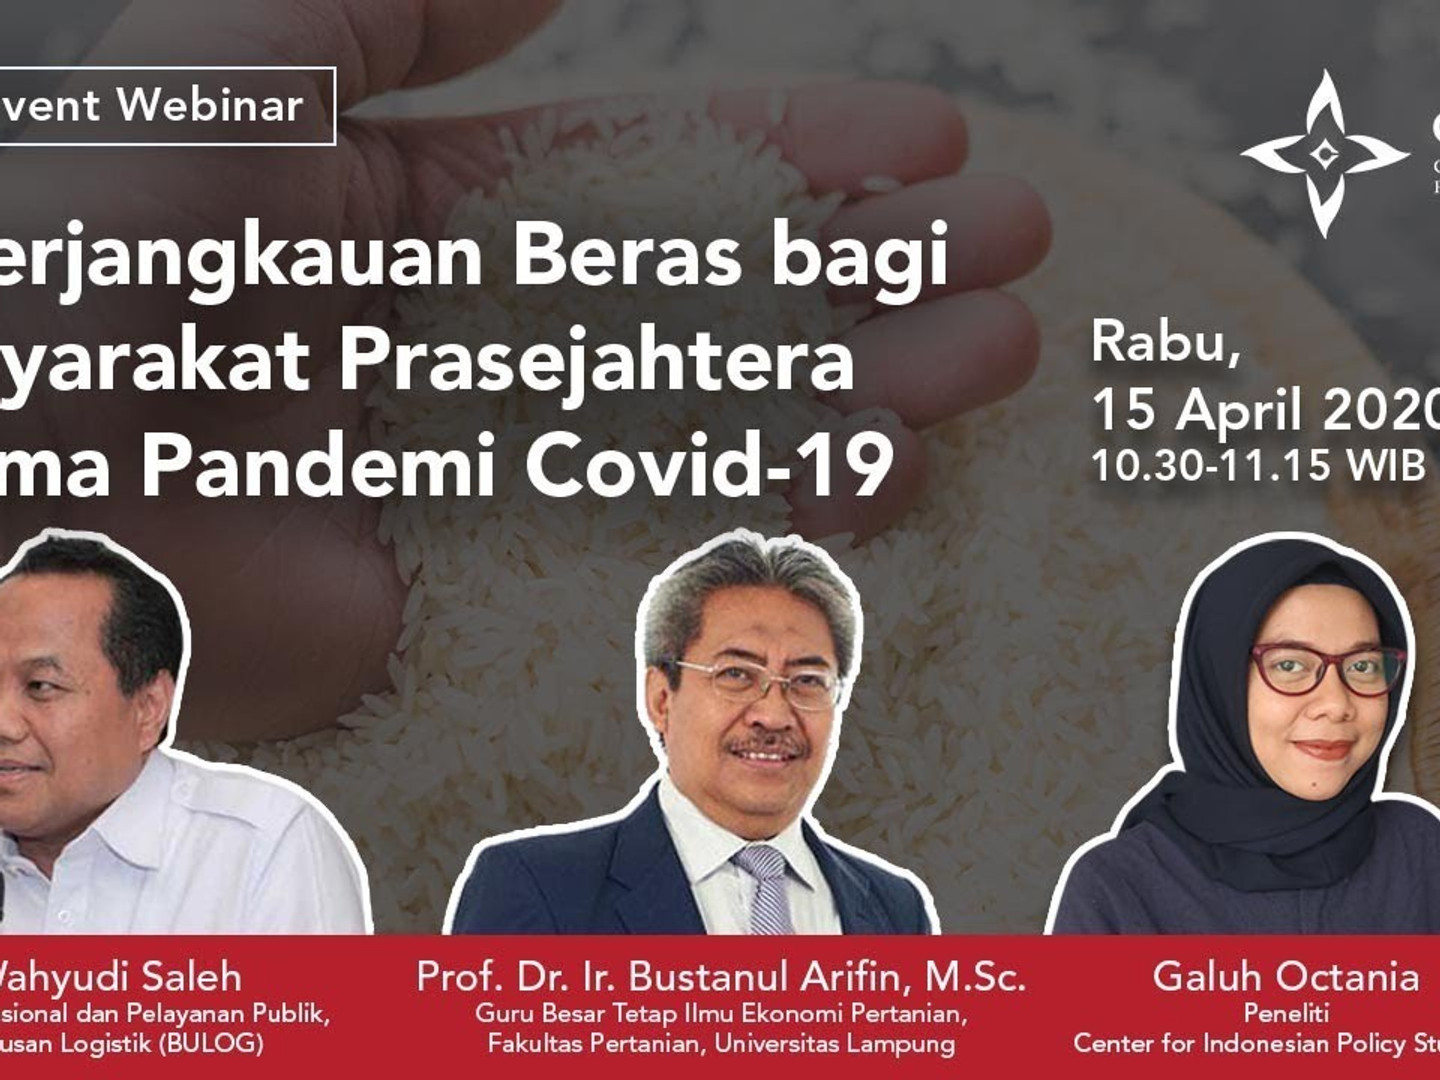 Webinar on Rice Affordability during Covid-19 Pandemic